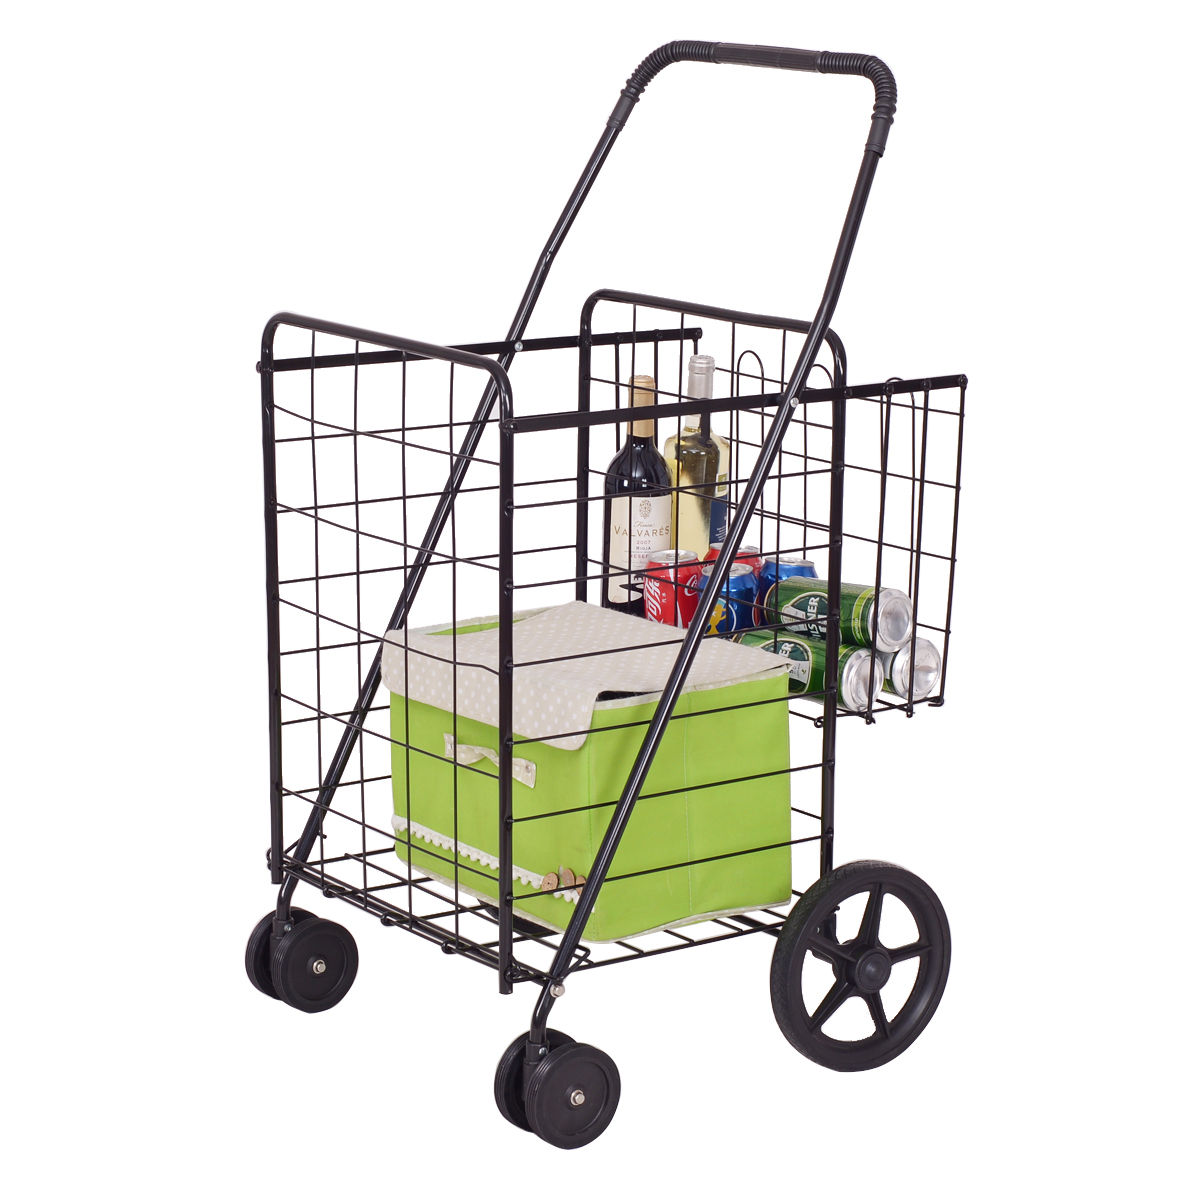 Costway Folding Shopping Cart Jumbo Basket with Swivel Wheels